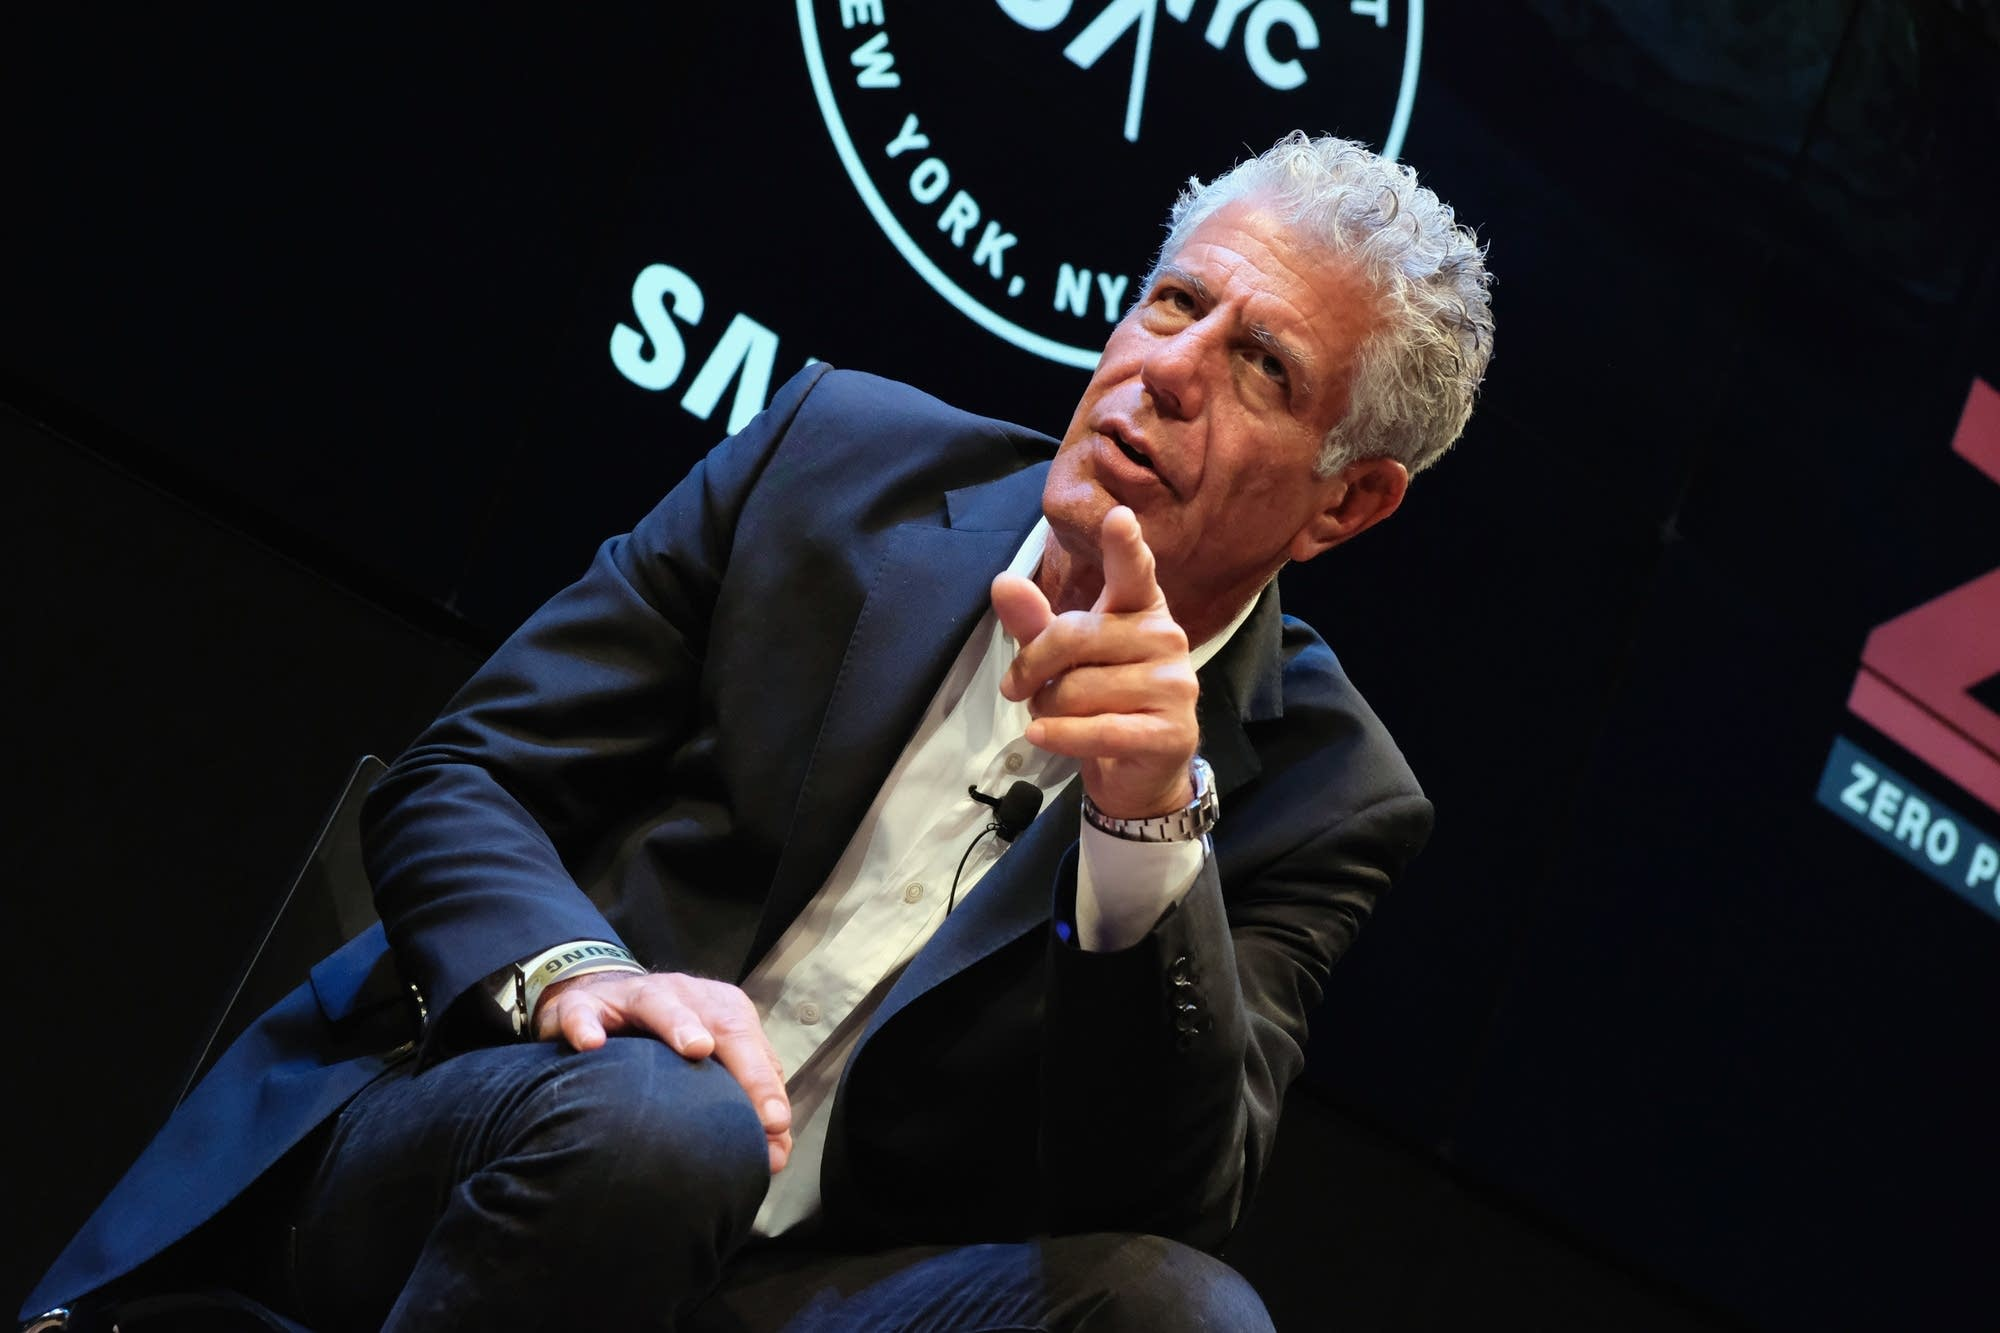 Anthony Bourdain speaks during a screening.